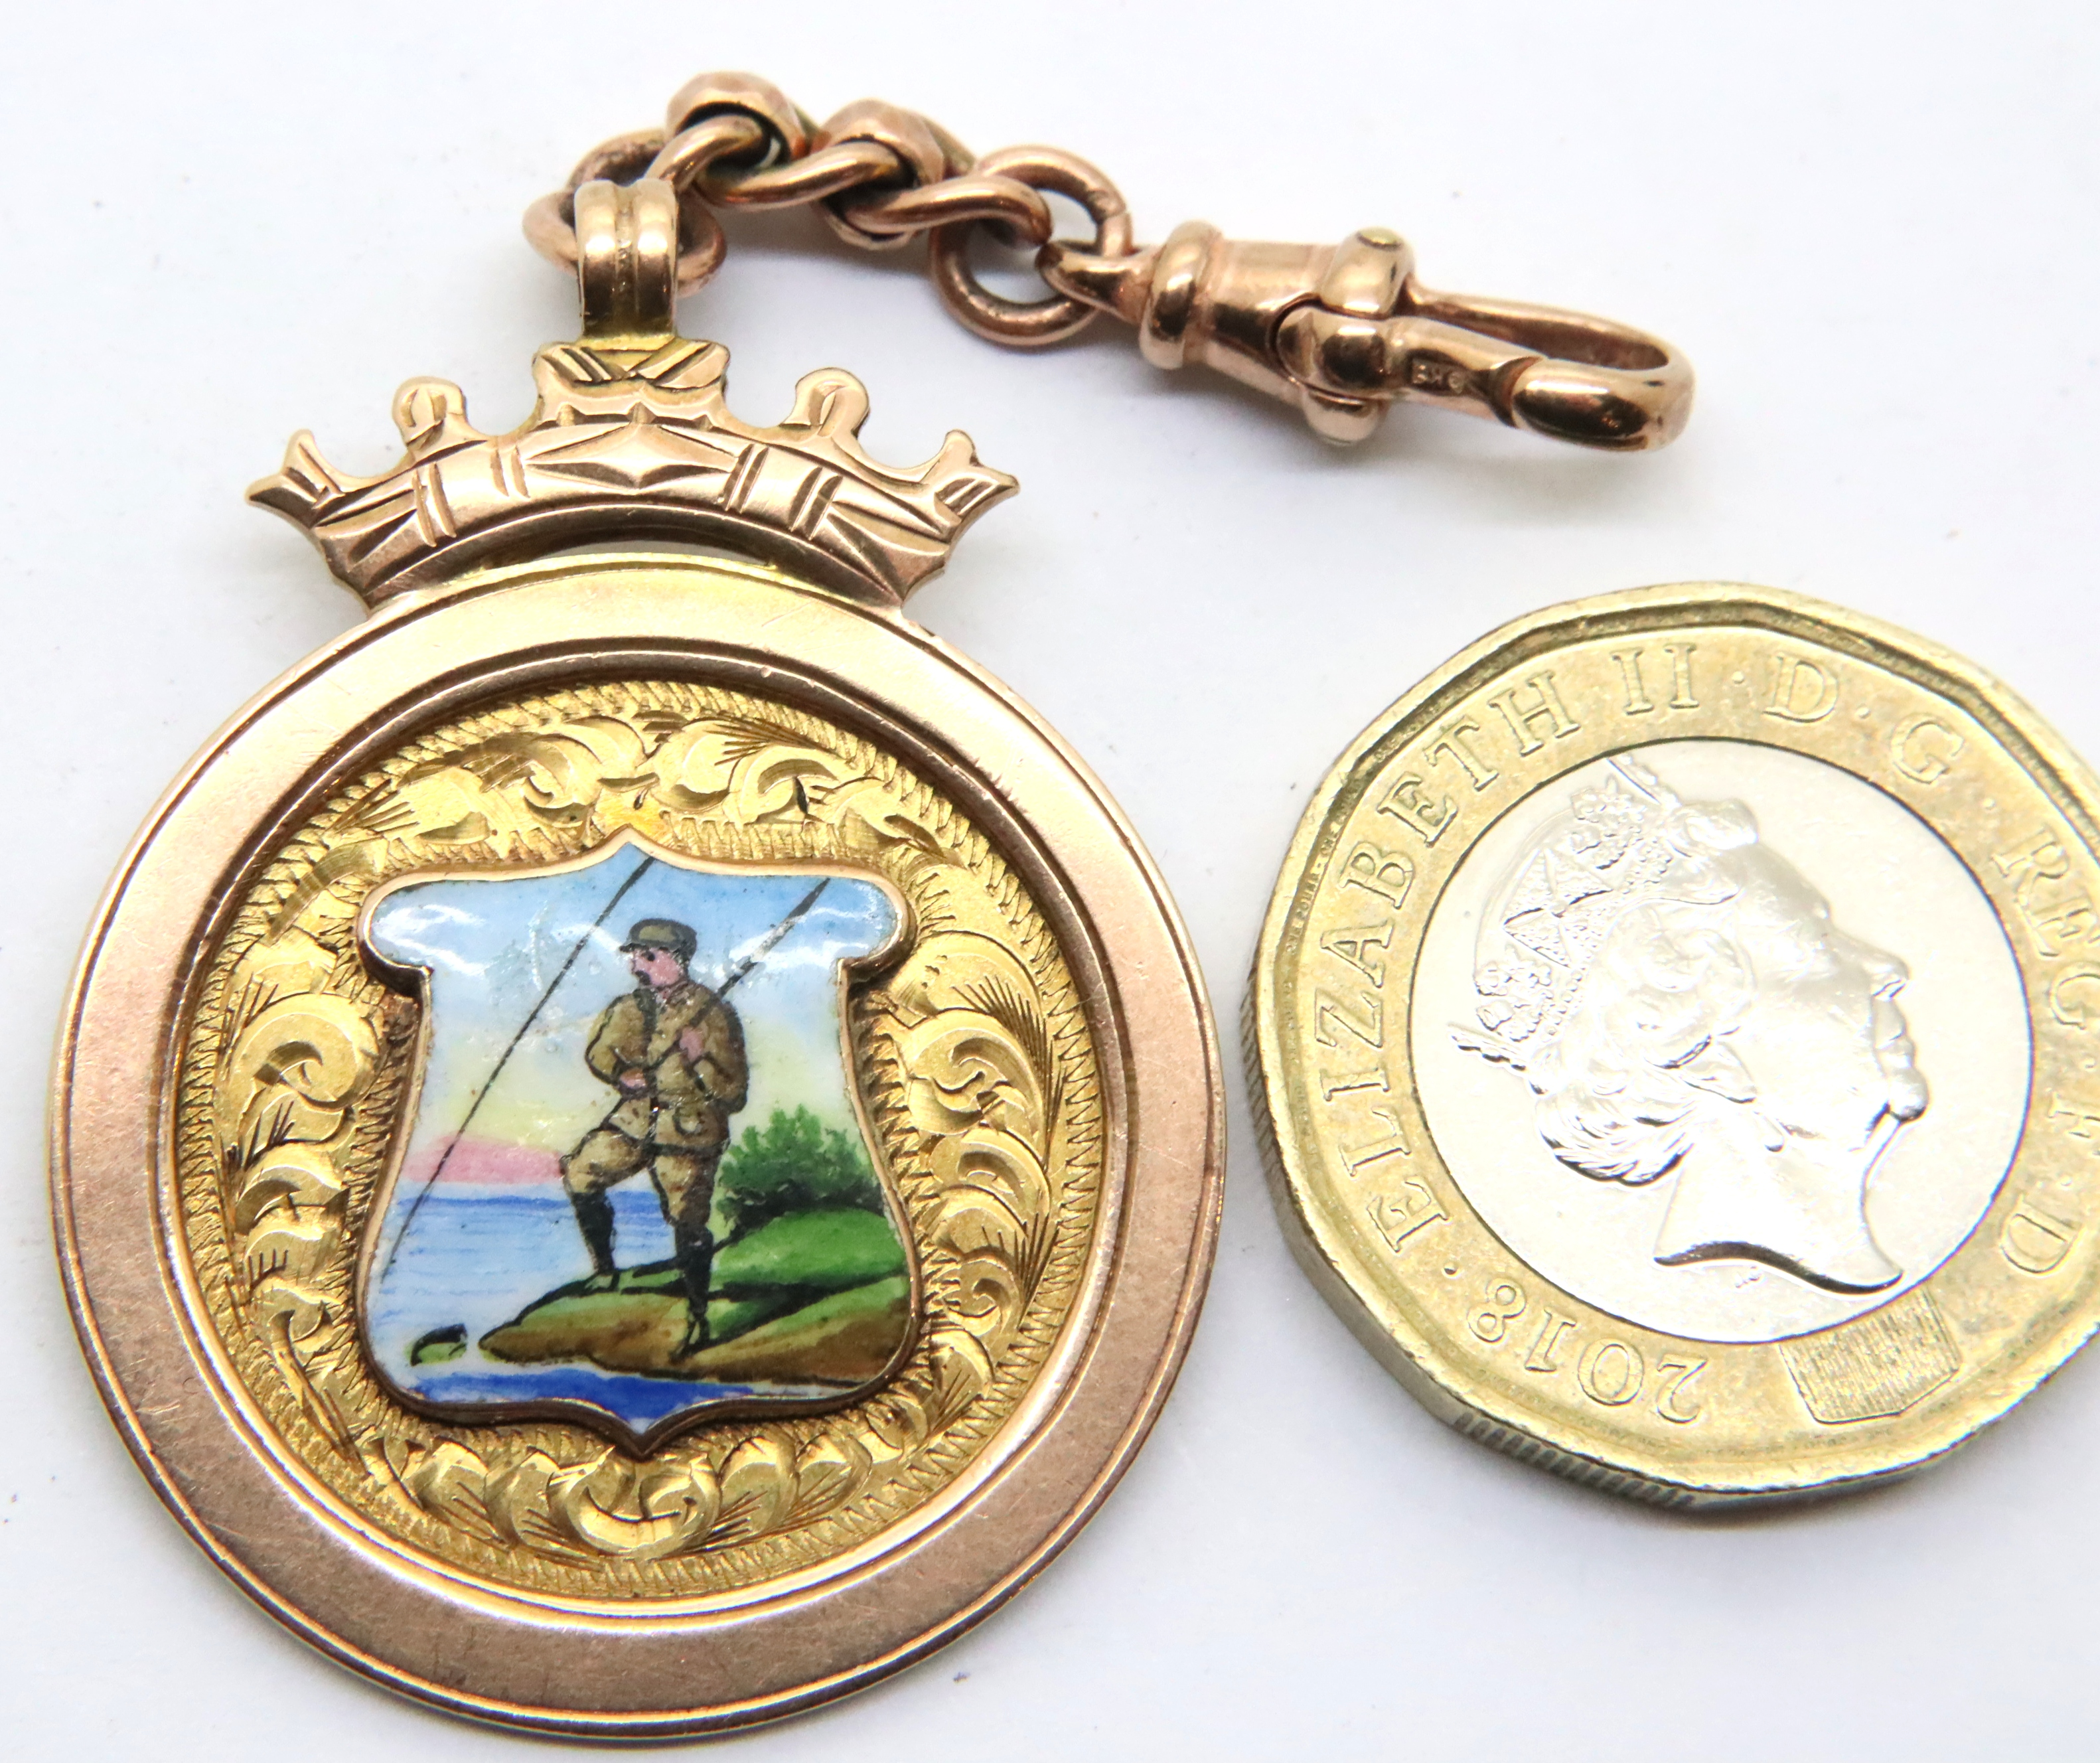 Antique 1923 Chester 9ct rose gold and enamel fishing medal/pocket watch fob by Thomas Fattorini,